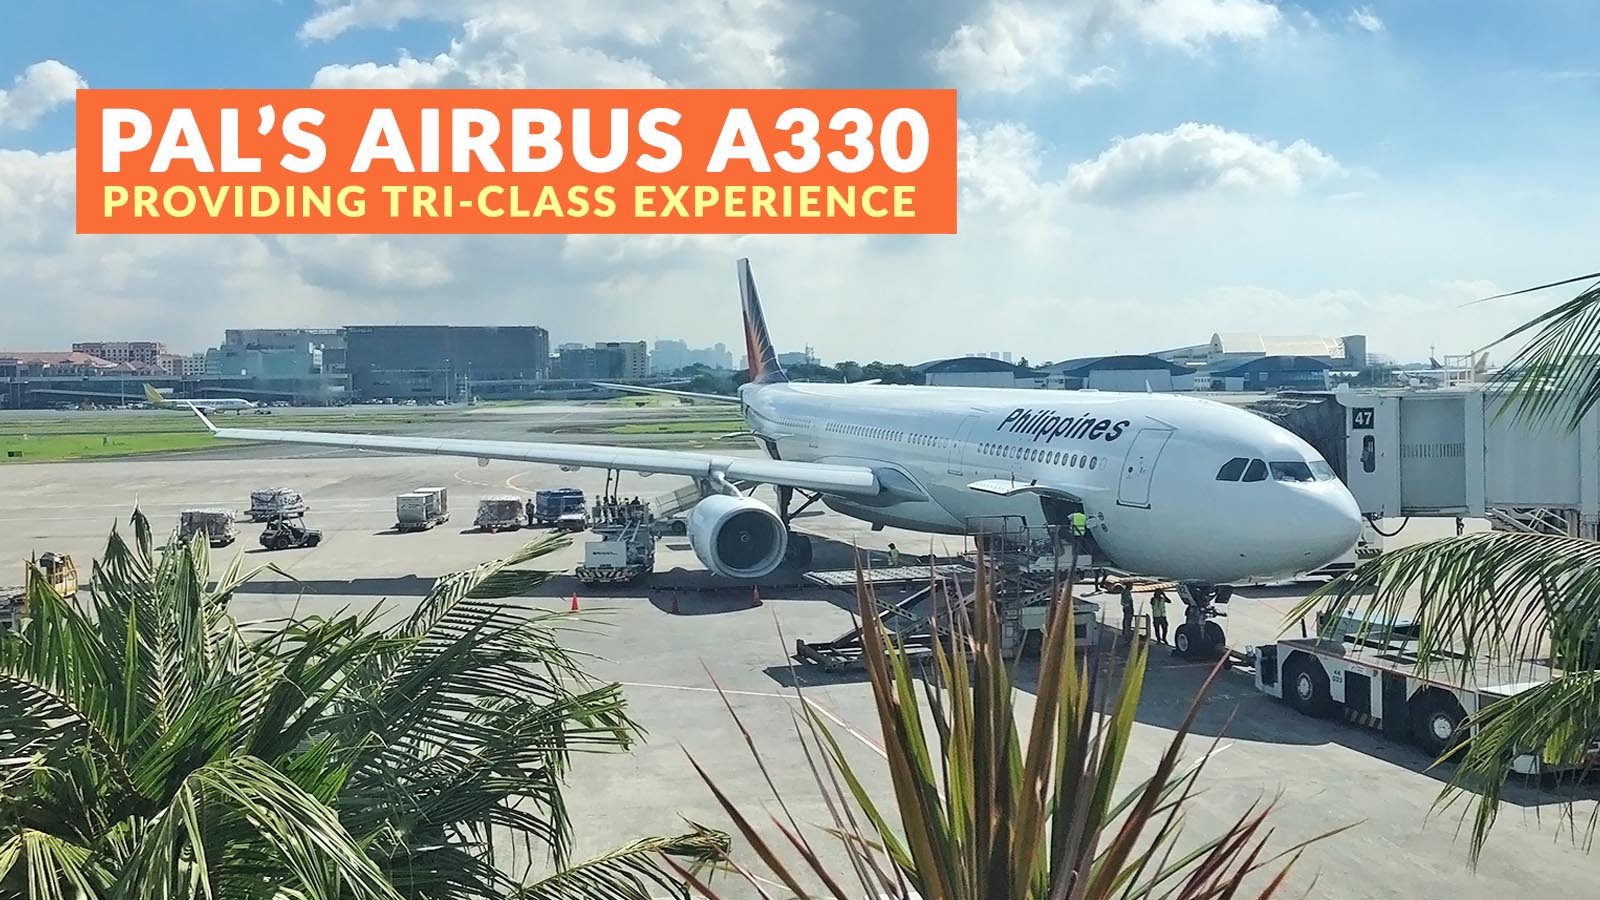 PHILIPPINE AIRLINES' AIRBUS A330: A Tri-Class Experience